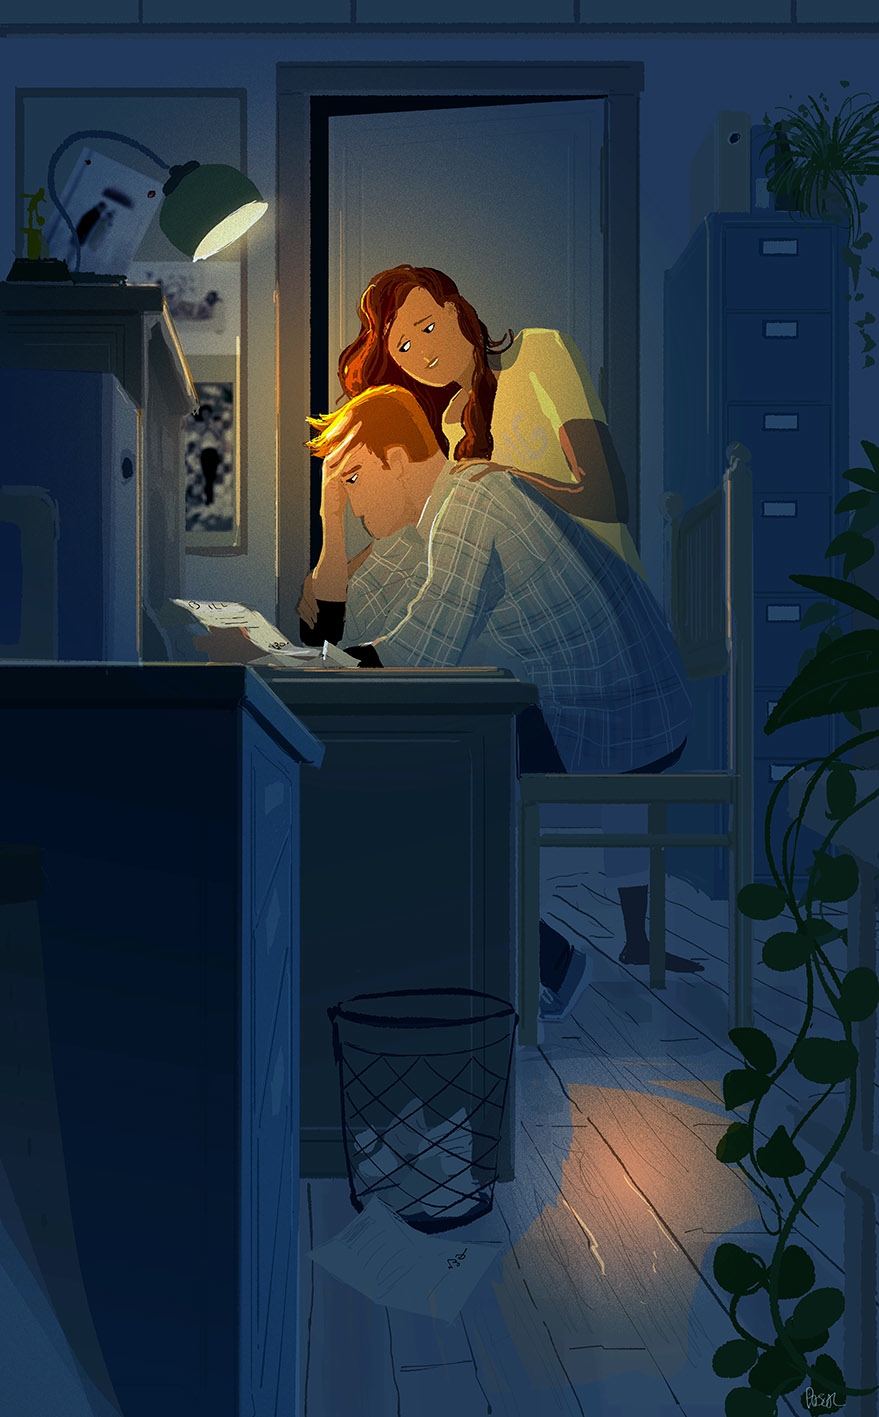 Worries. Sometimes I feel falli - pascalcampion | ello